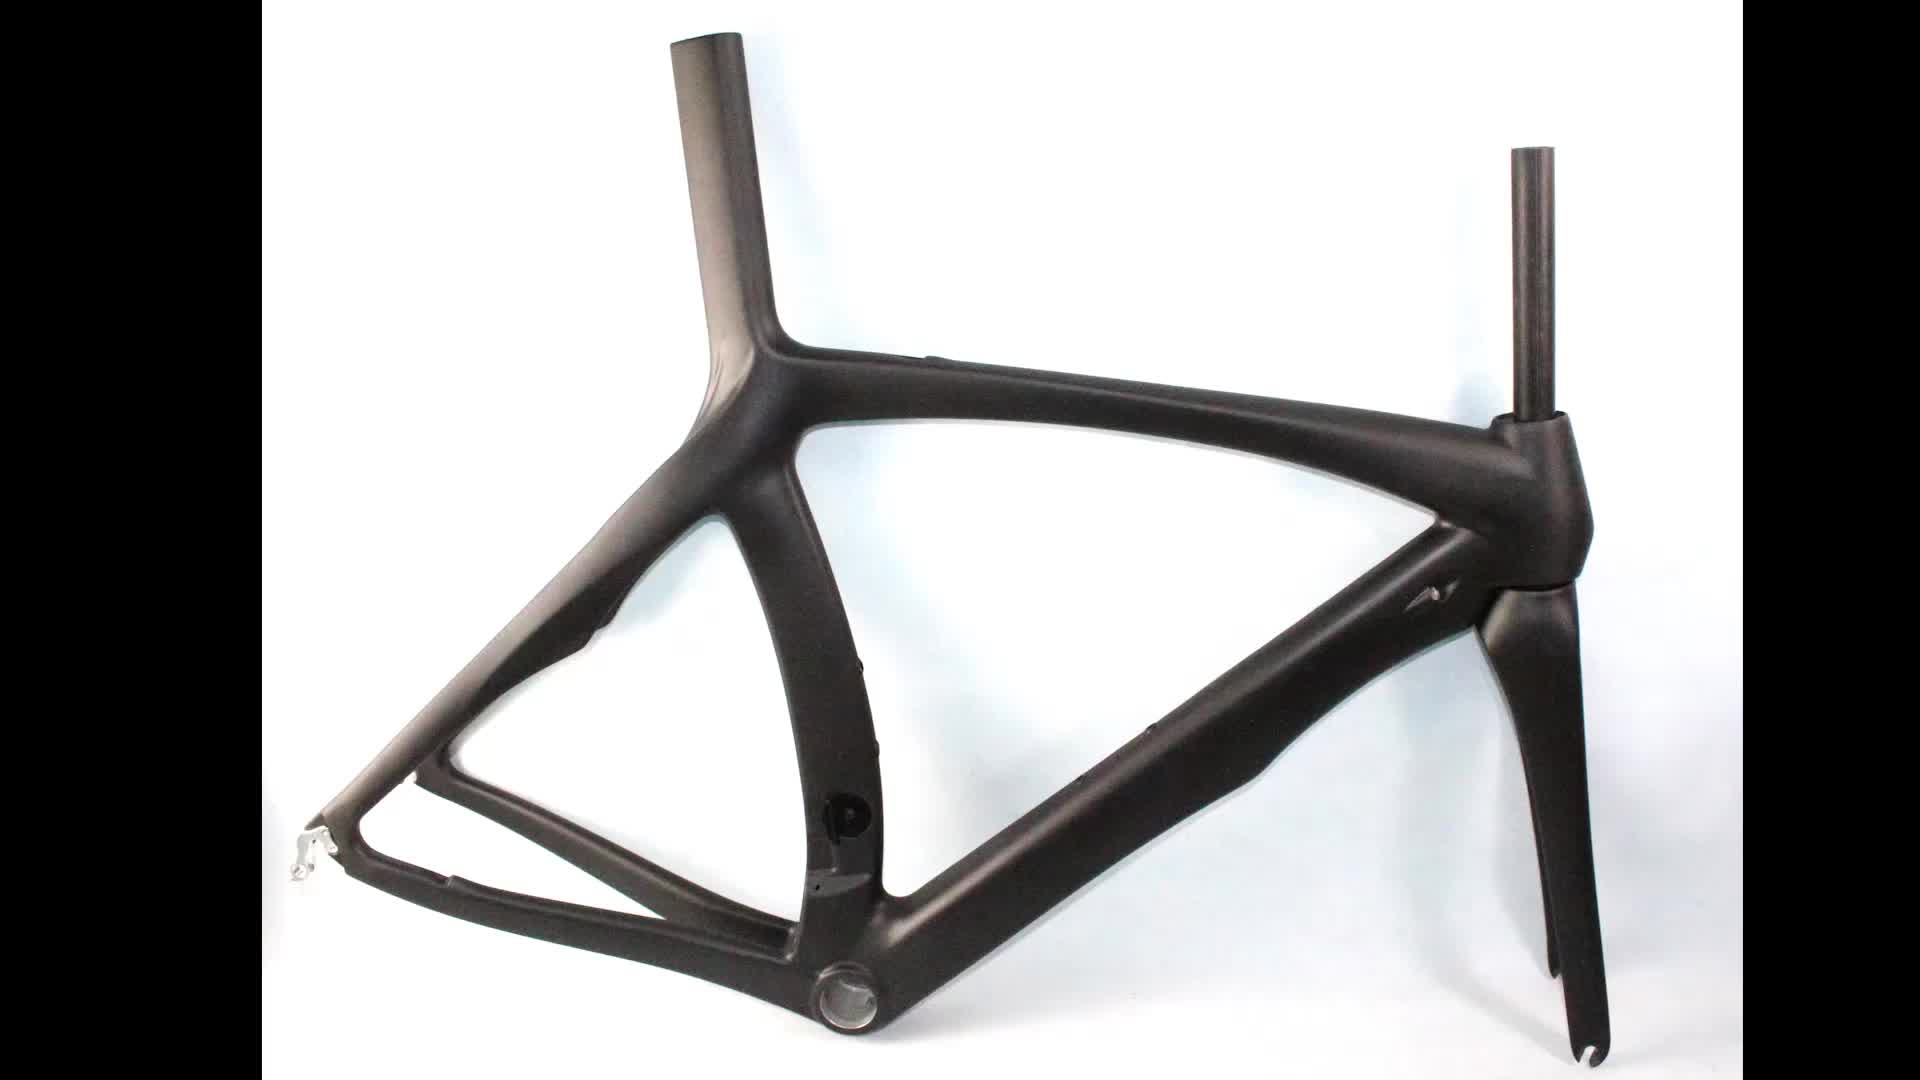 Competitive Price 48-52cm carbon road bike with direct price